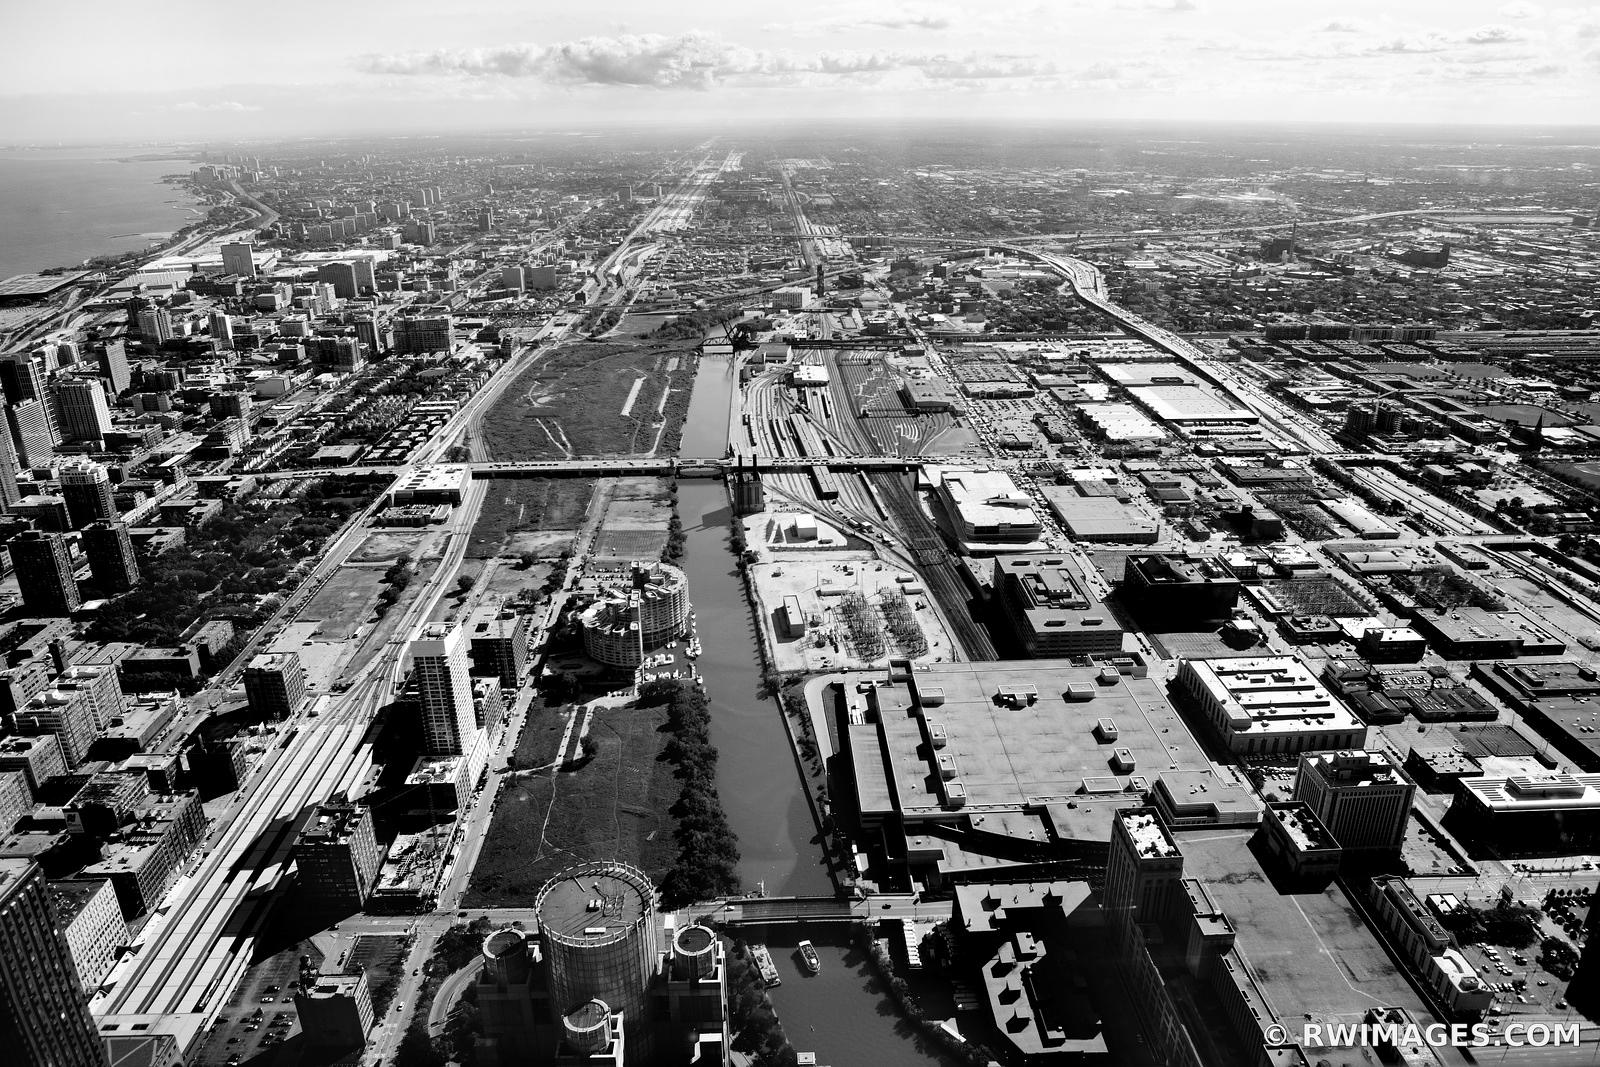 SOUTH SIDE OF THE LOOP CHICAGO ILLINOIS BLACK AND WHITE AERIAL